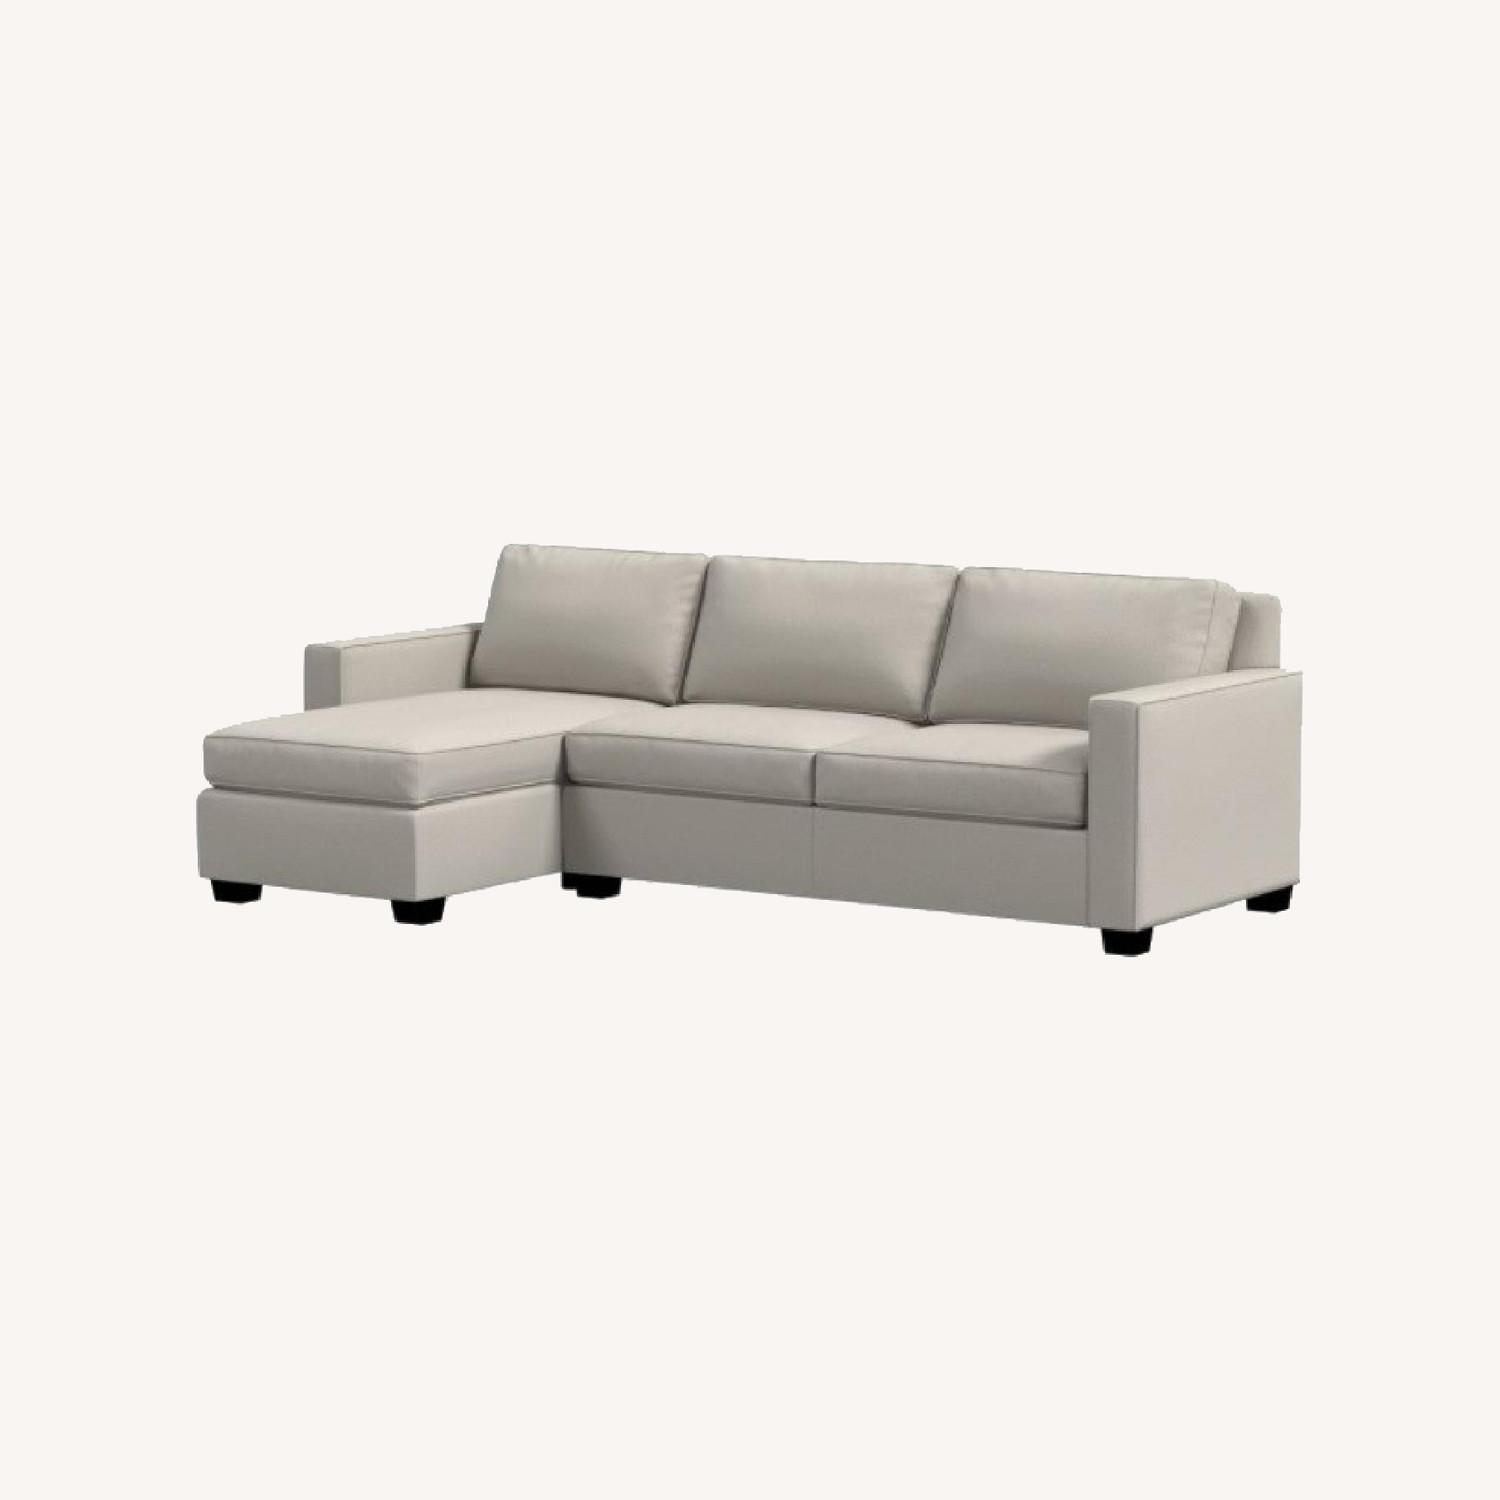 West Elm Gray Henry Sleeper Sofa with Chaise - image-0